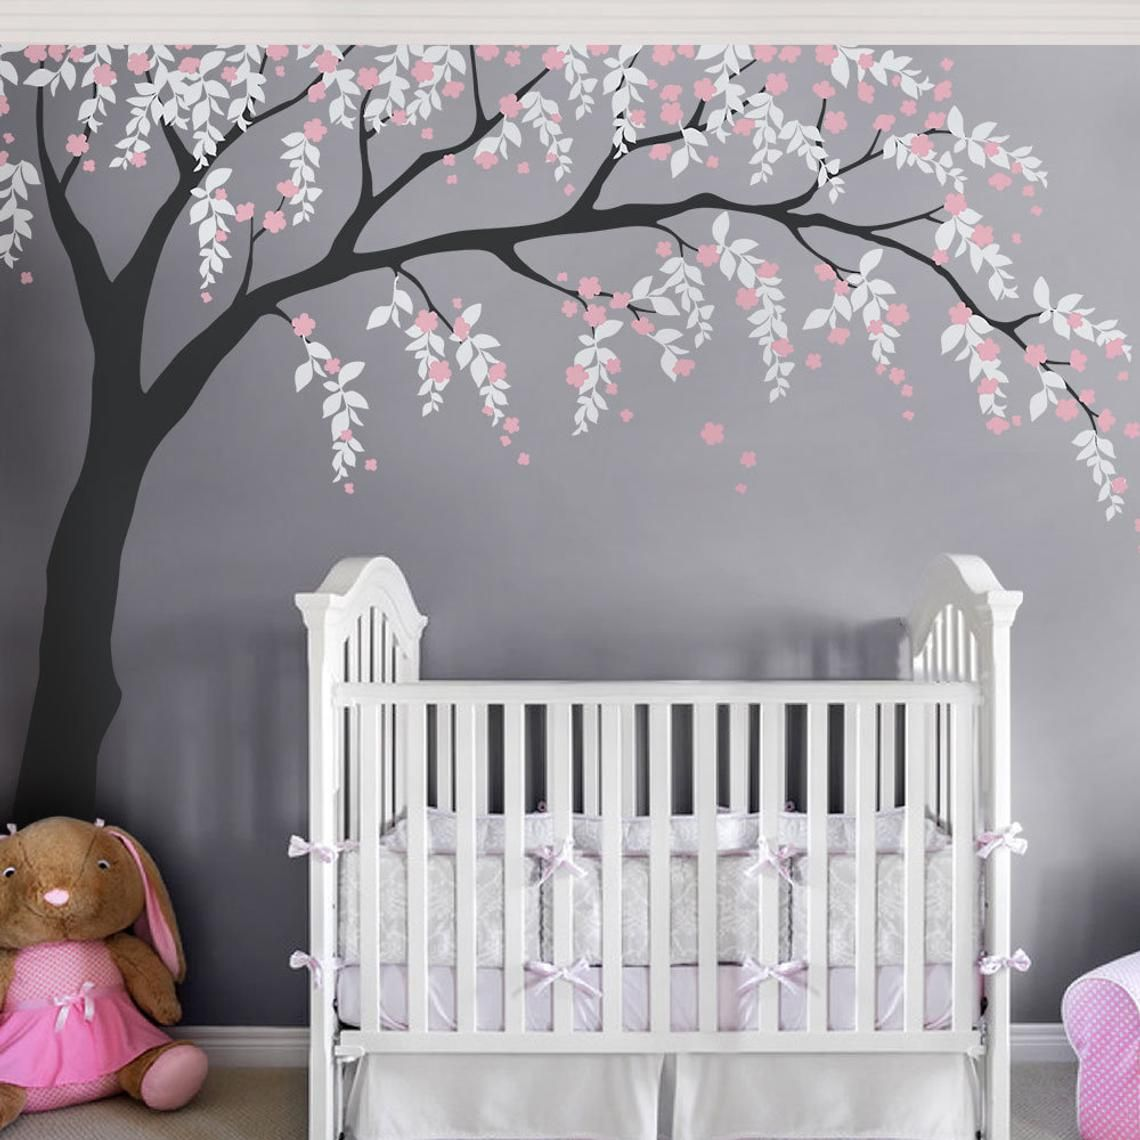 Cherry Blossom Weeping Willow Tree Decal Baby Girls Nursery Etsy In 2020 Nursery Wall Decals Tree Girl Nursery Wall Nursery Wall Decals